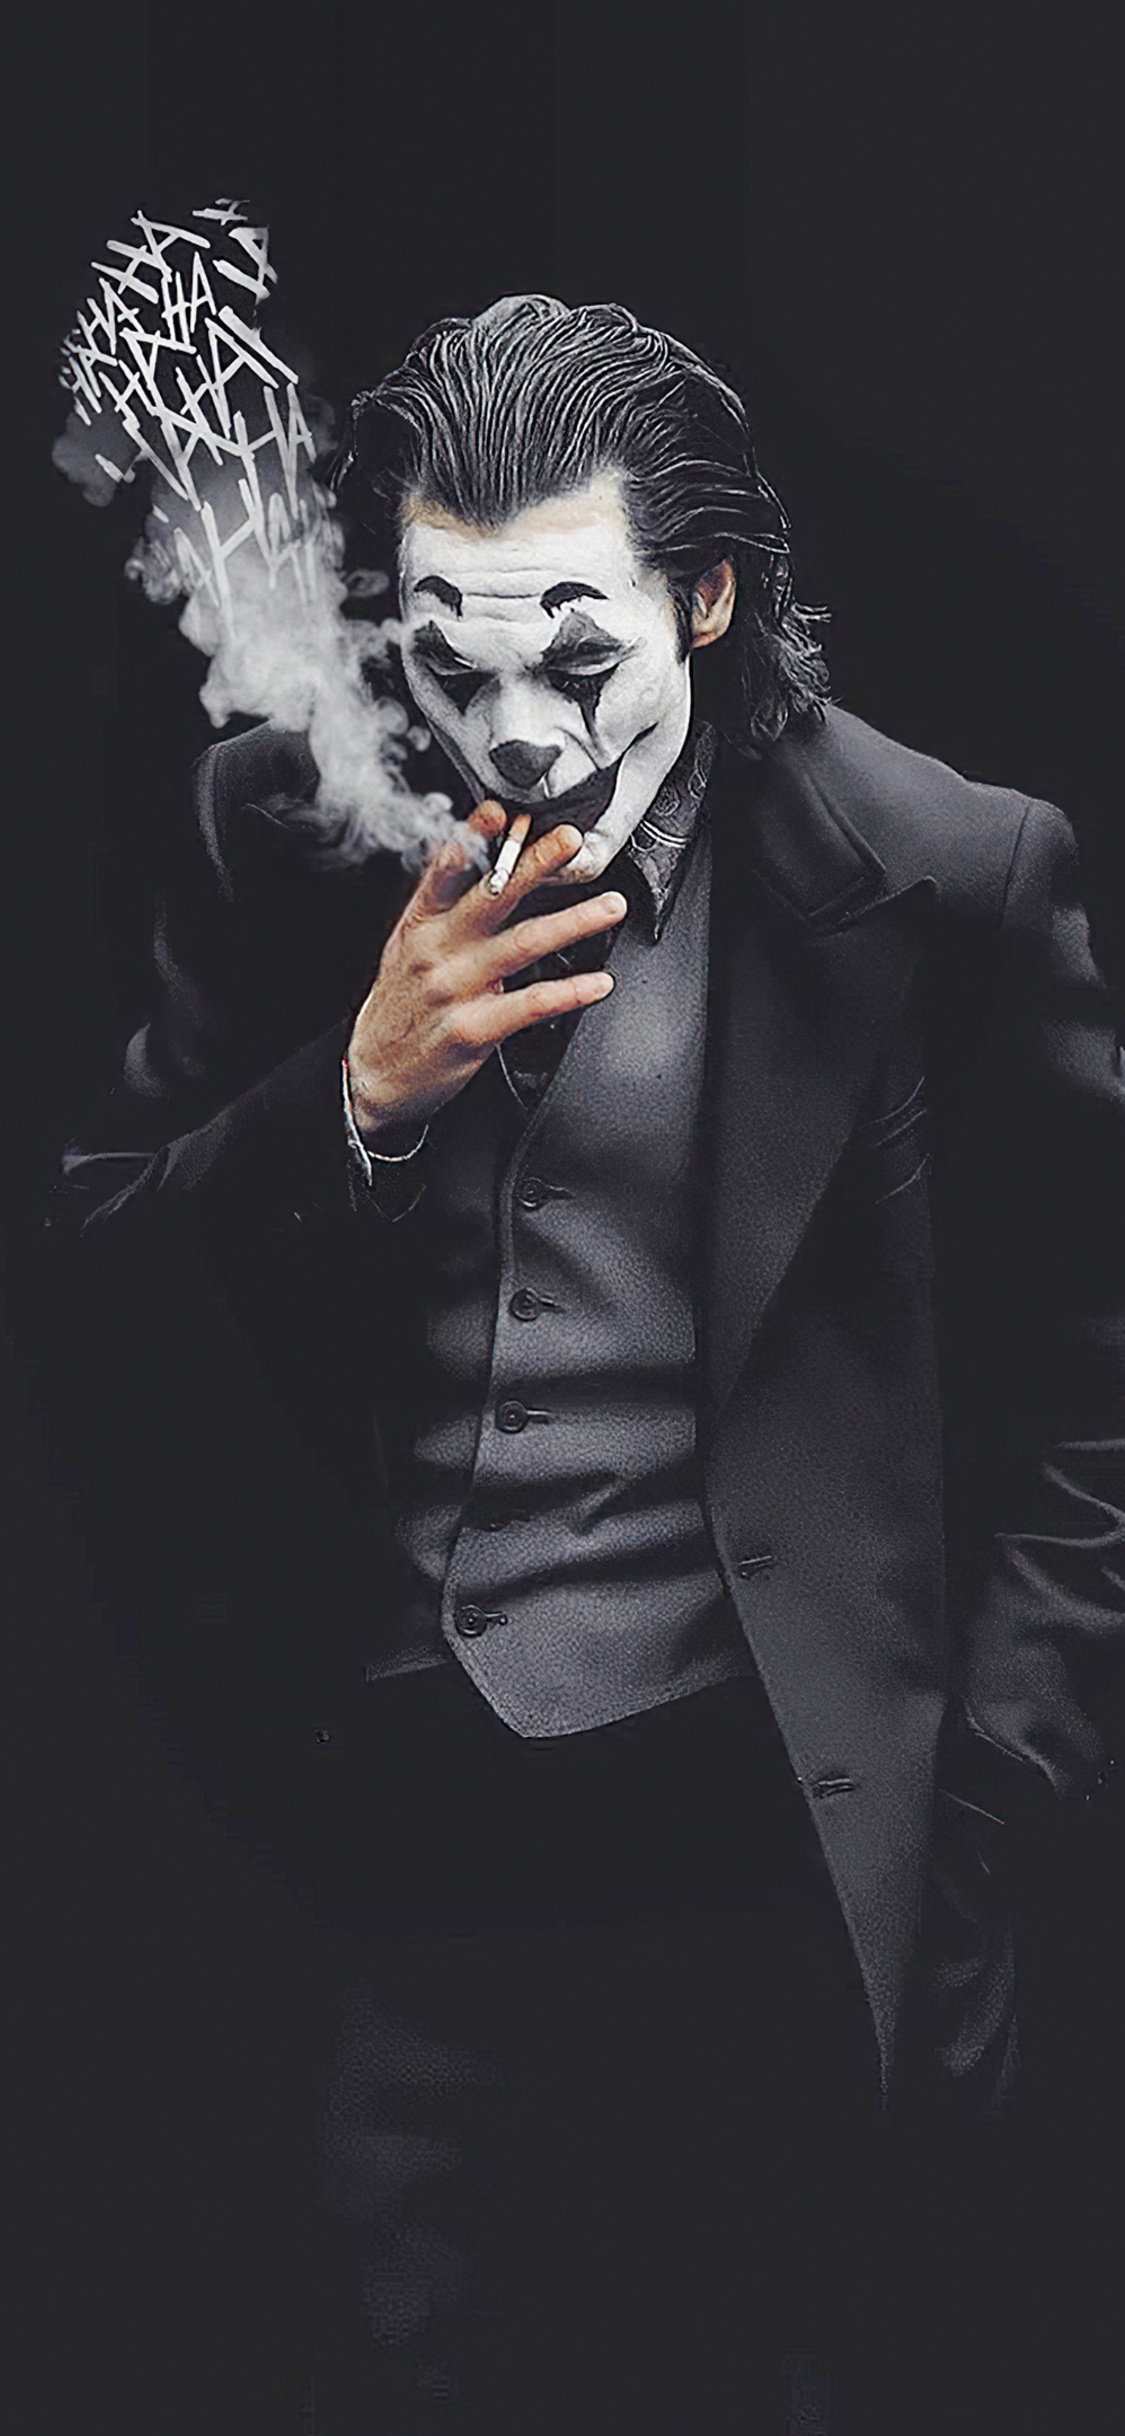 Joker Smoking Wallpaper Iphone X